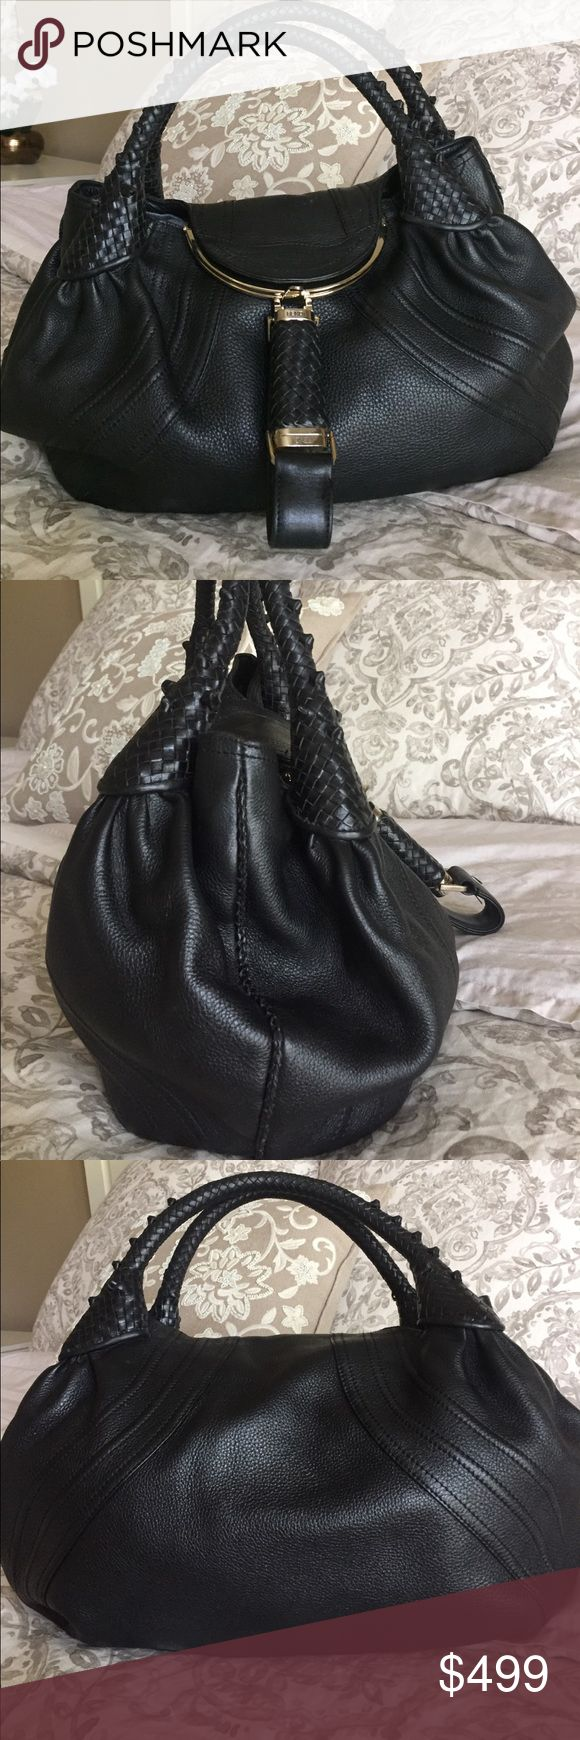 Fendi Spy Bag Pre-loved Fendi bag bought from the boutique store in Houston. Authentic. In exceptional condition except for a minor discoloration at the bottom of the lining. I loved this bag but recently switched my style to diaper bags, and it's your turn to love it now 😉. Fendi Bags Totes